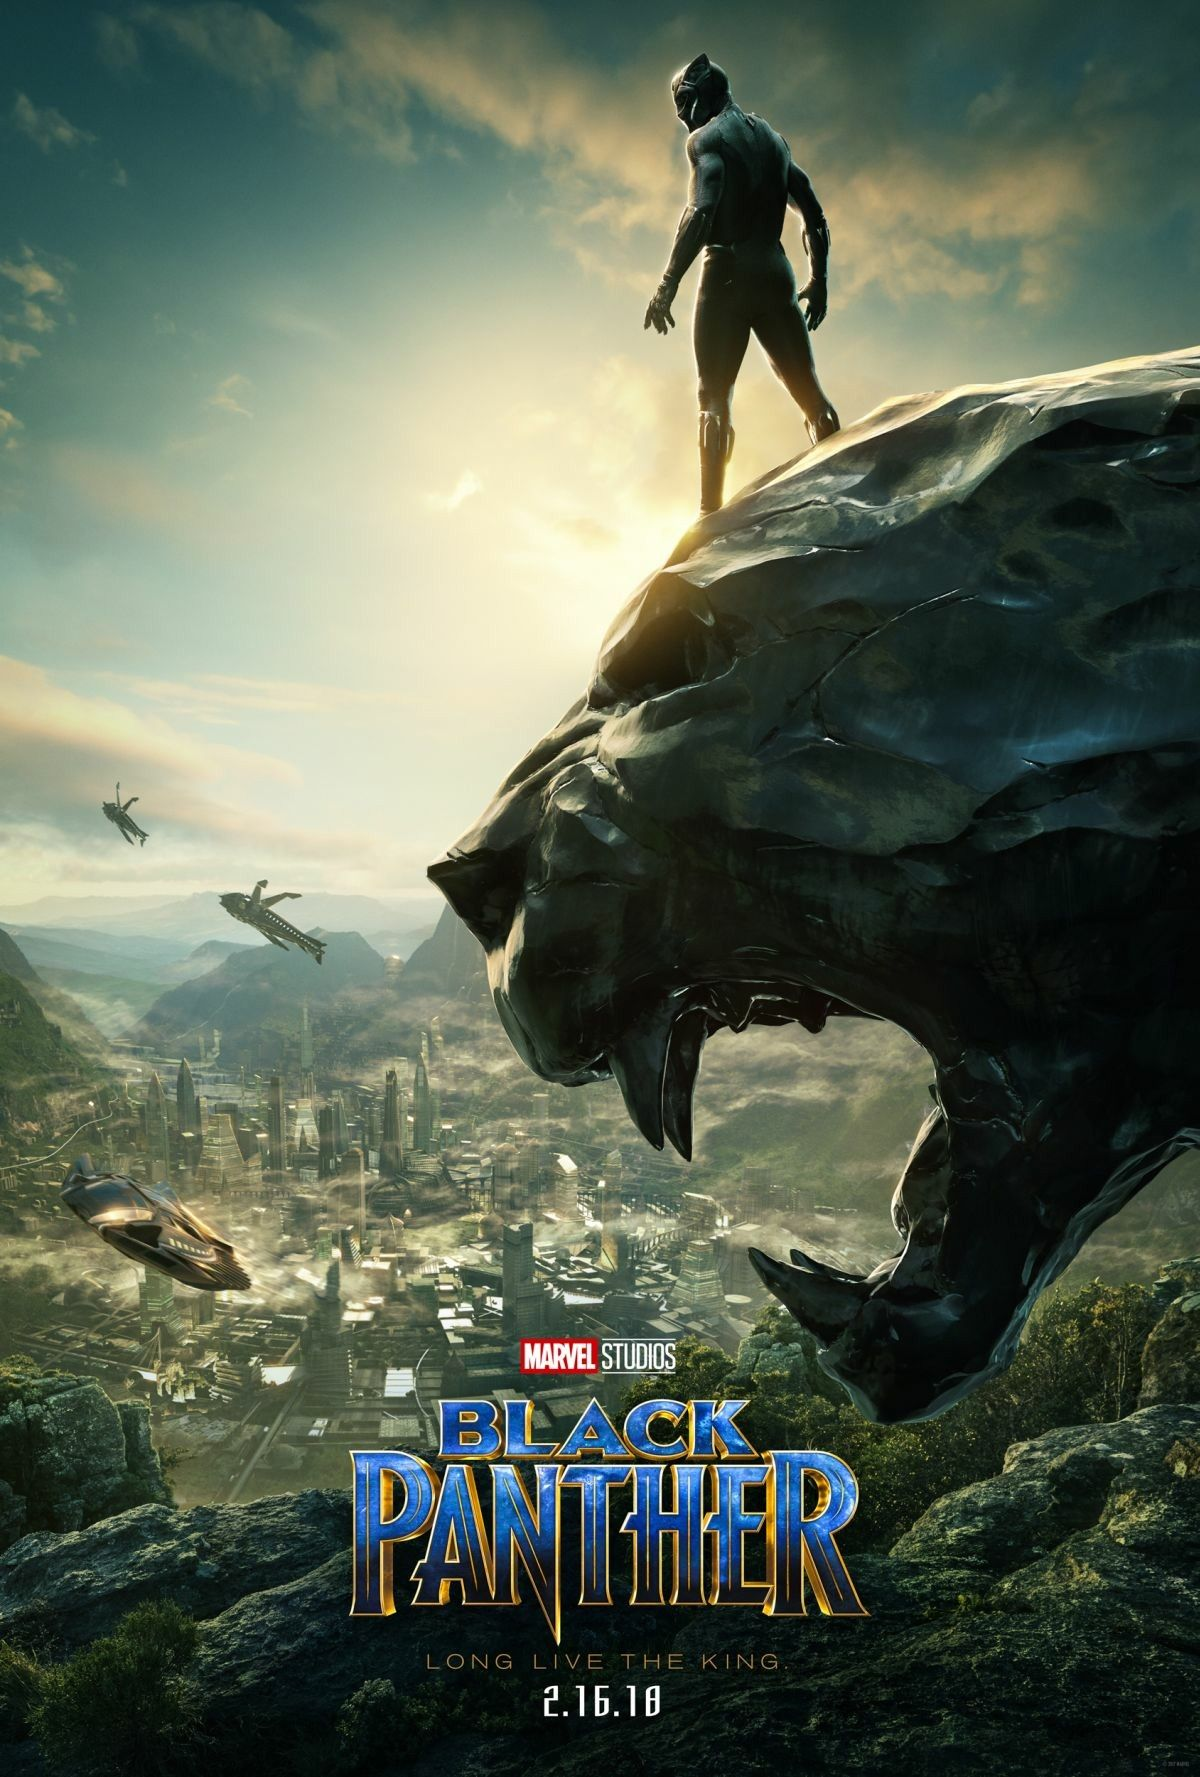 Black Panther Black Panther Movie Poster Black Panther Marvel Cinematic